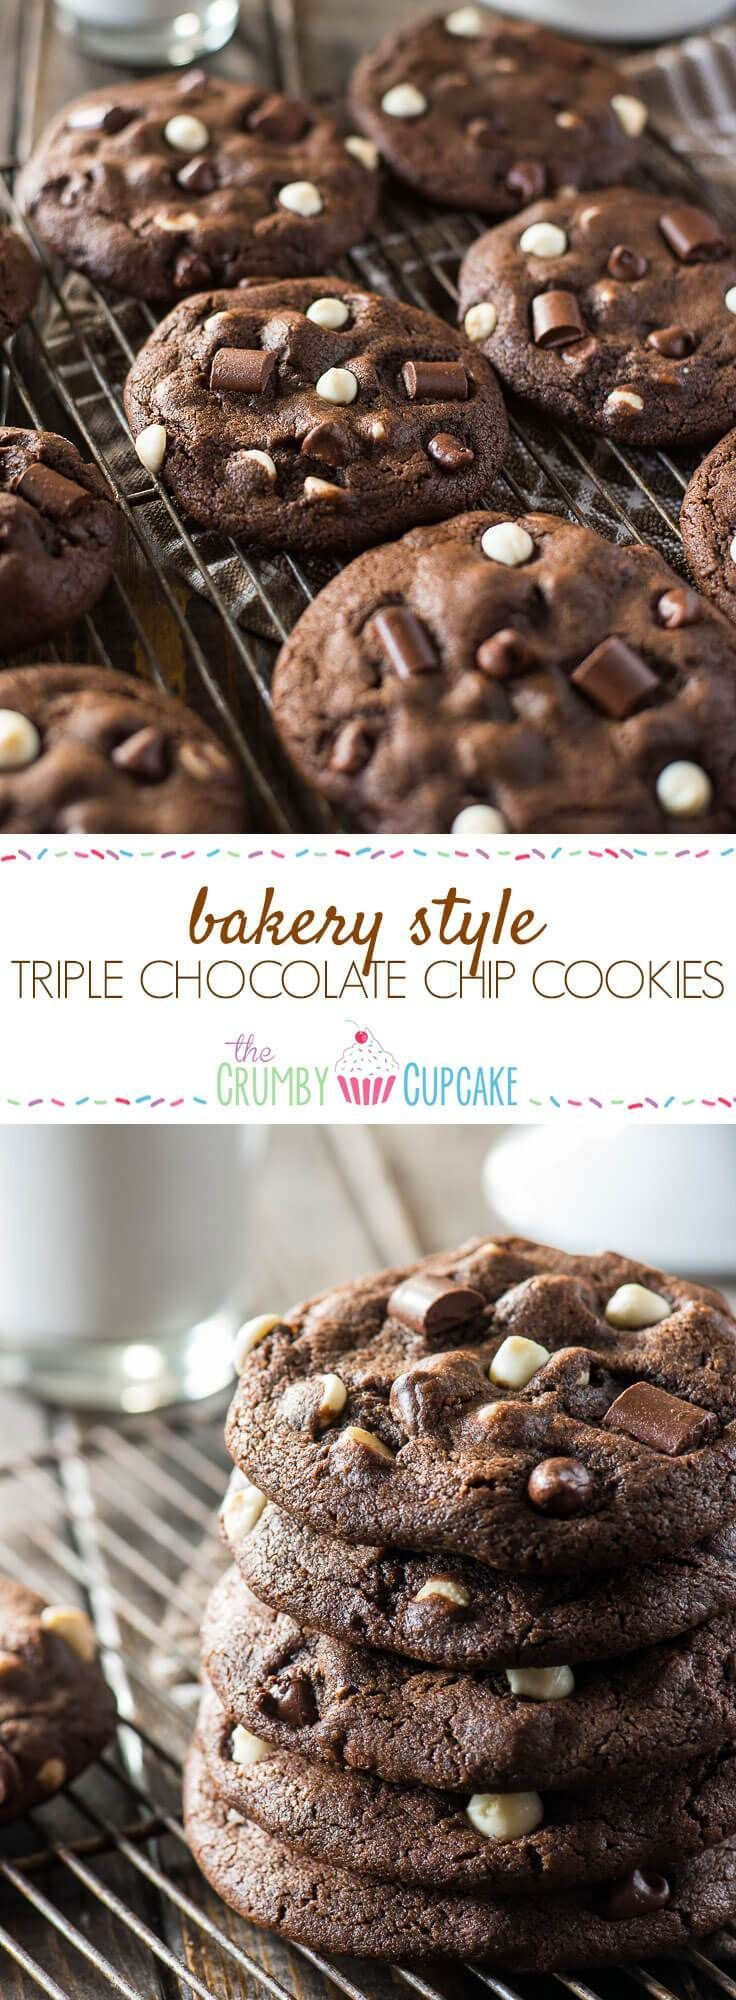 These super soft, extra chewy, totally over-sized Bakery Style Triple Chocolate Chip Cookies are about to become the new best friend to your next glass of milk!